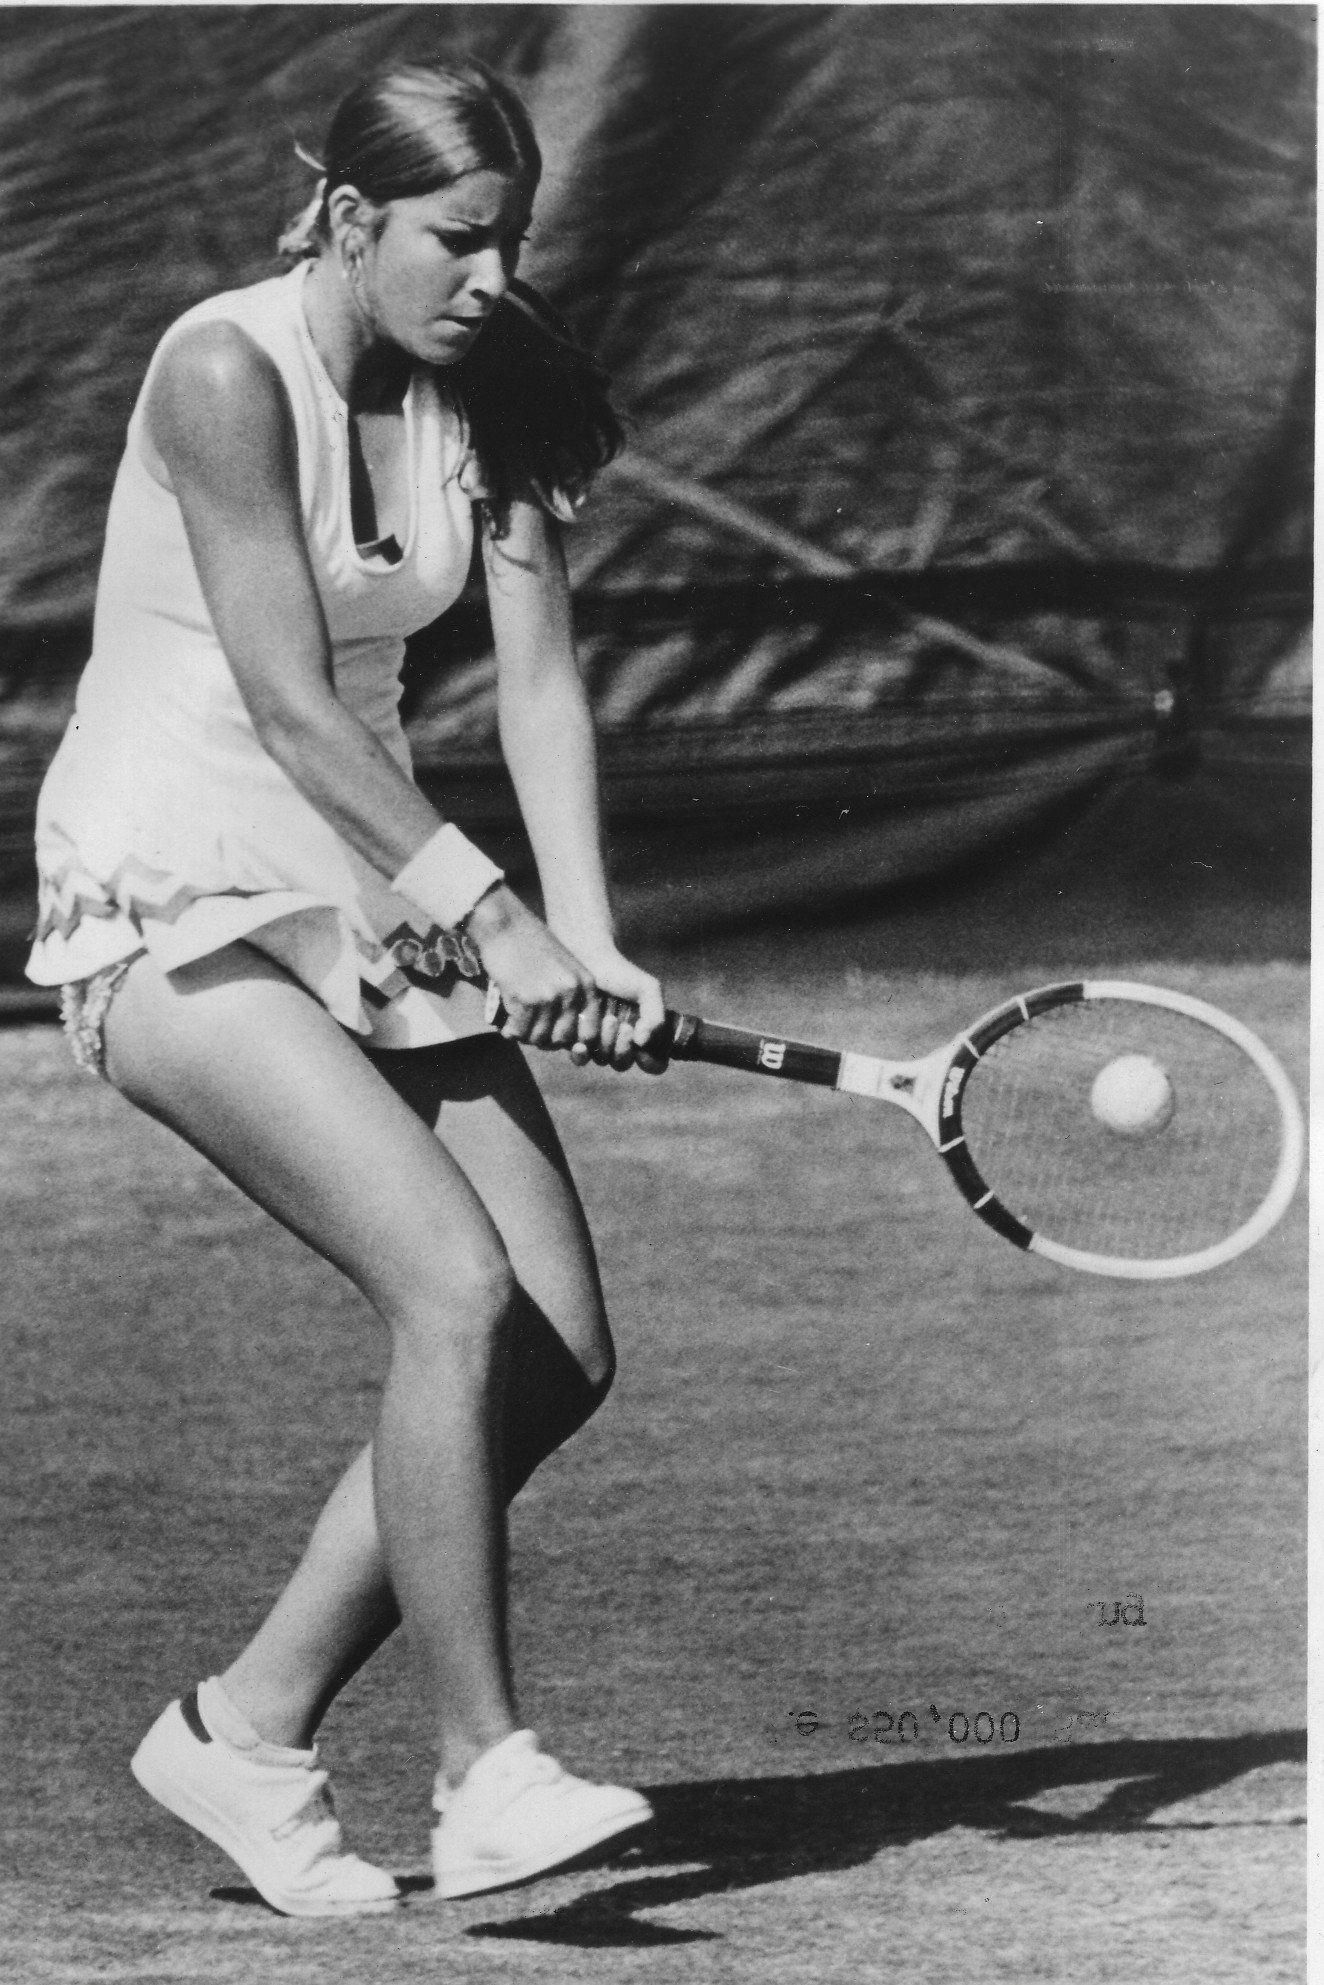 chris+evert+young Chris Evert in the 1970s 'It was the